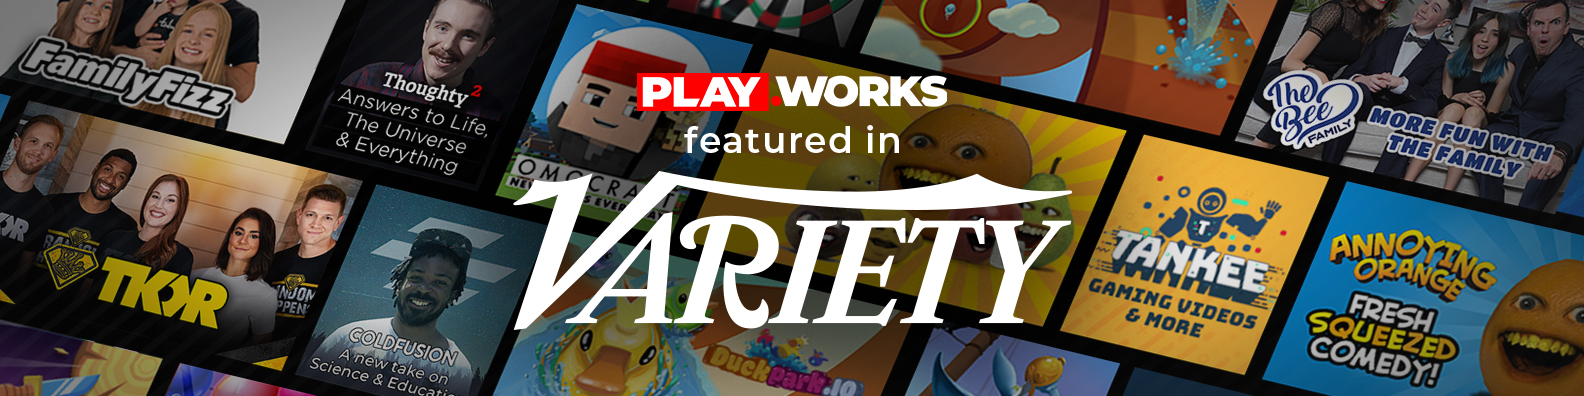 Variety.com - How PlayWorks, a Connected TV Platform for YouTube Content, Helps Creators Earn During COVID-19